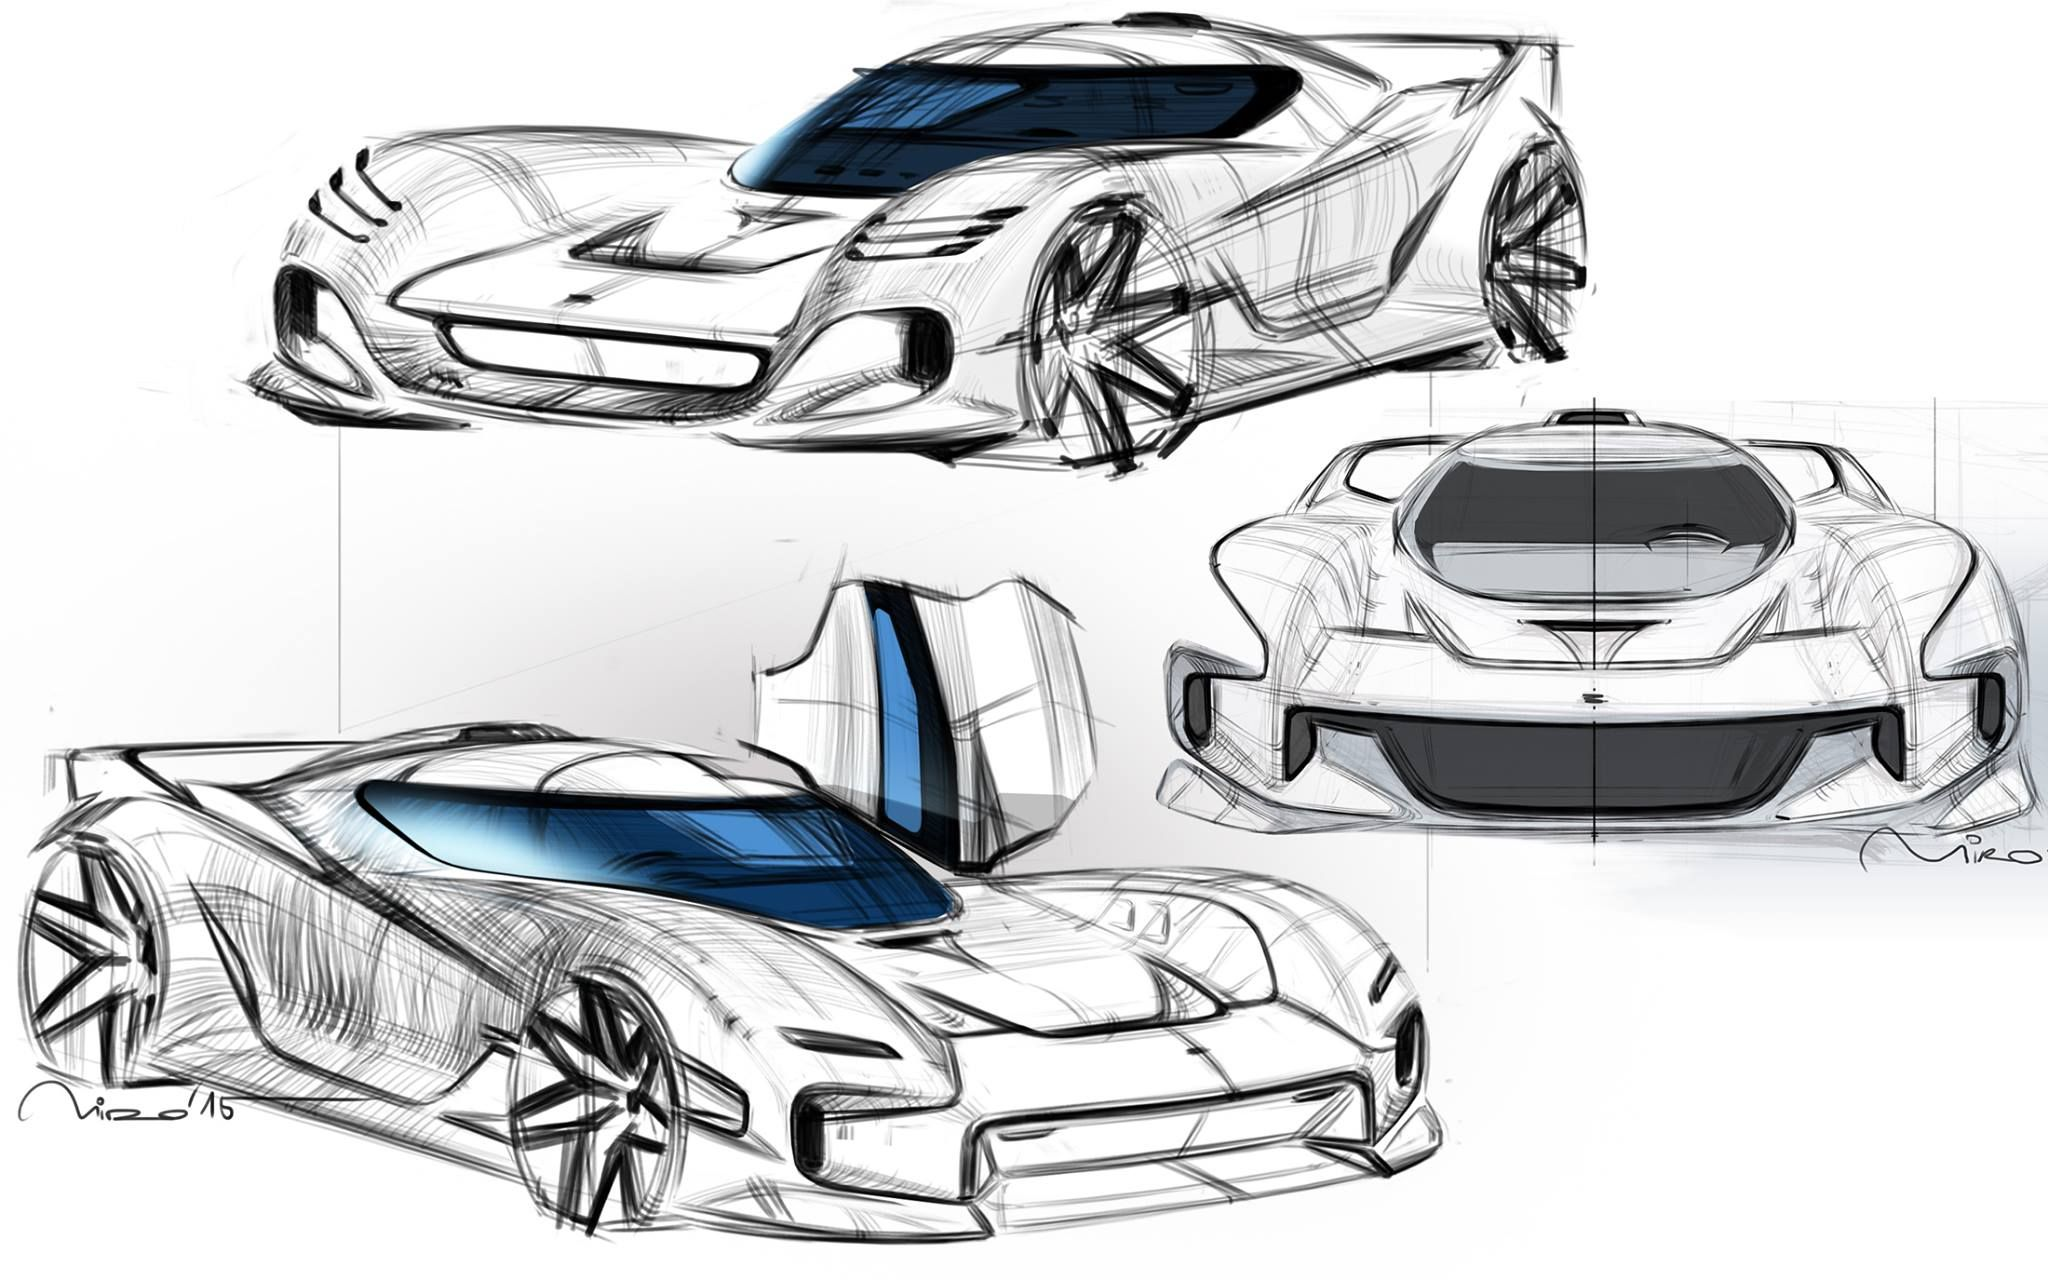 front end development continues #sketch #sportscar #design #car ...